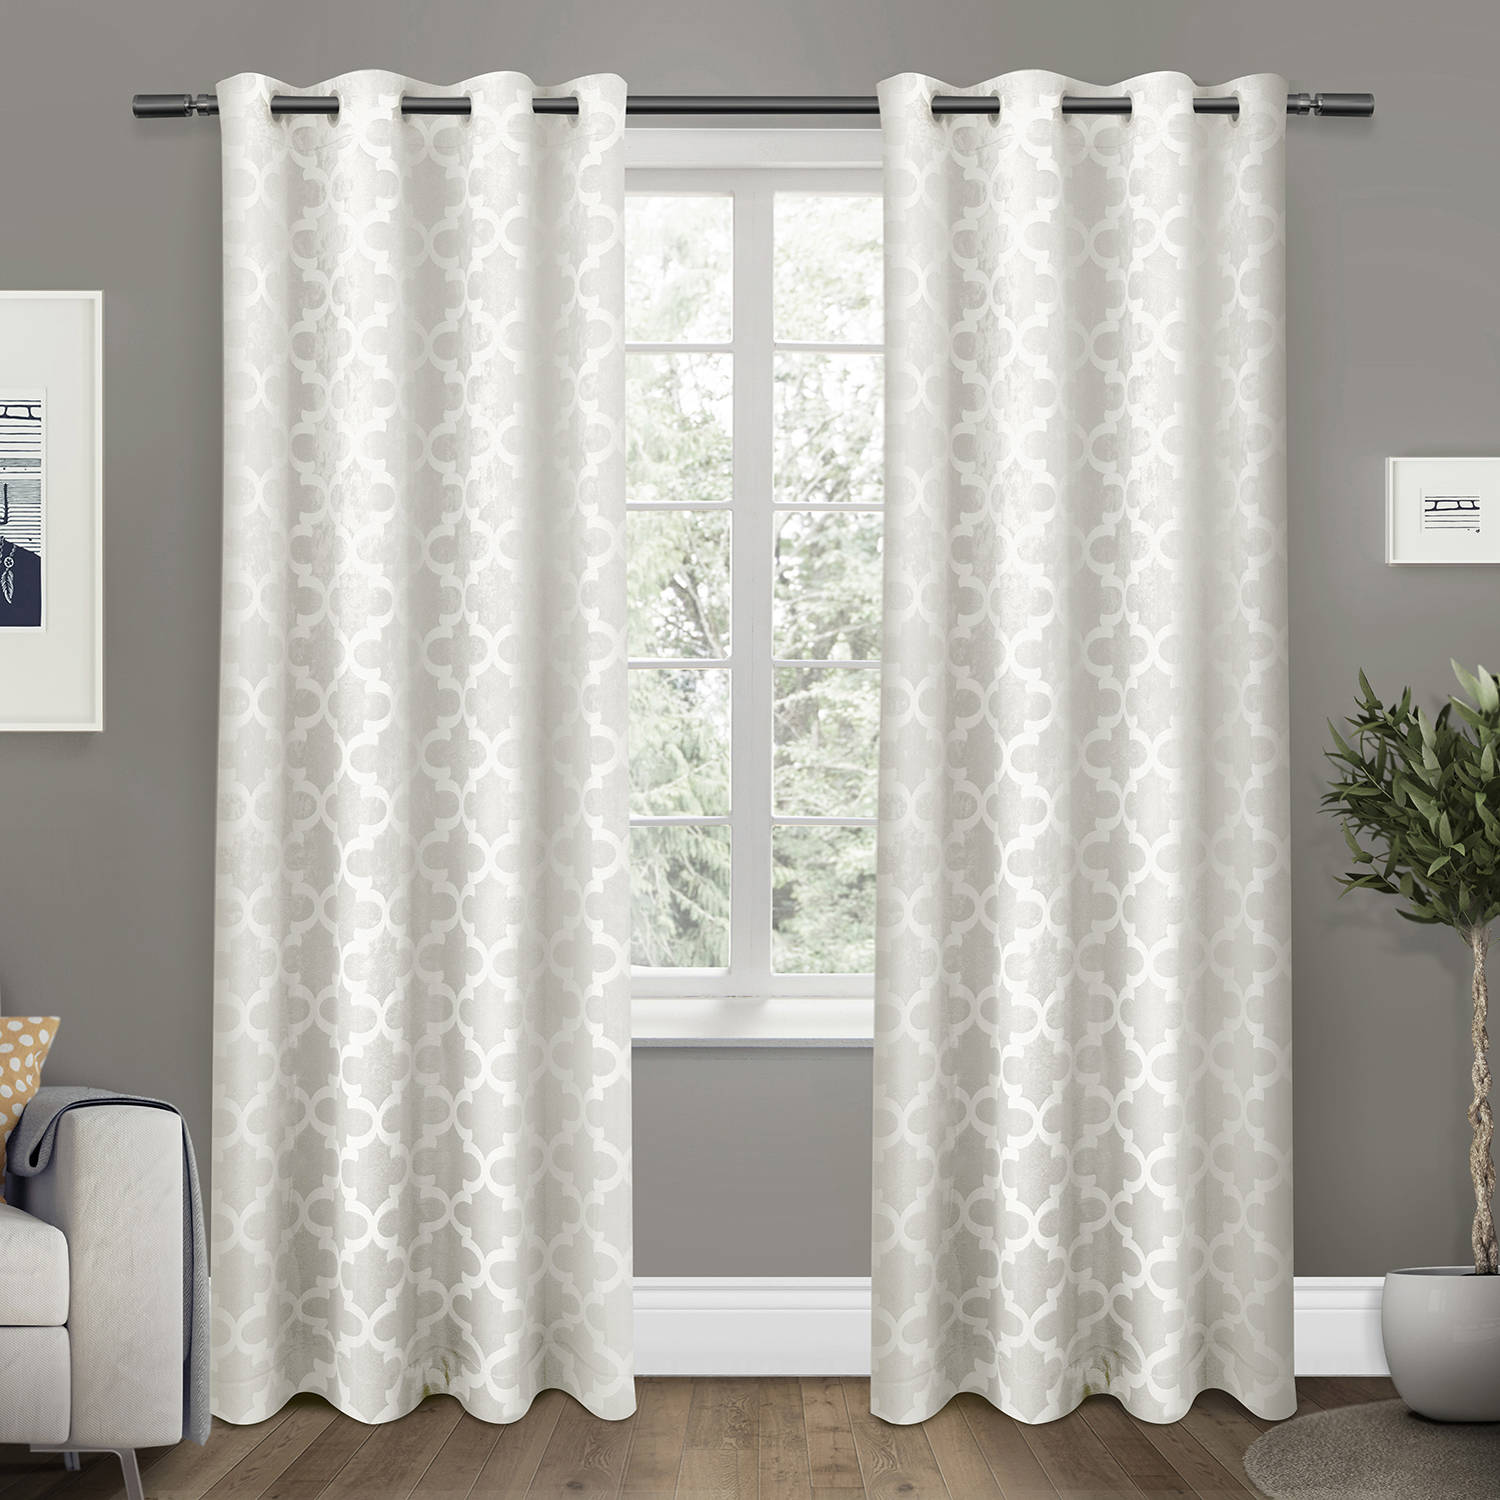 Exclusive Home Cartago Insulated Woven Blackout Window Curtain Panel Pair With Grommet Top